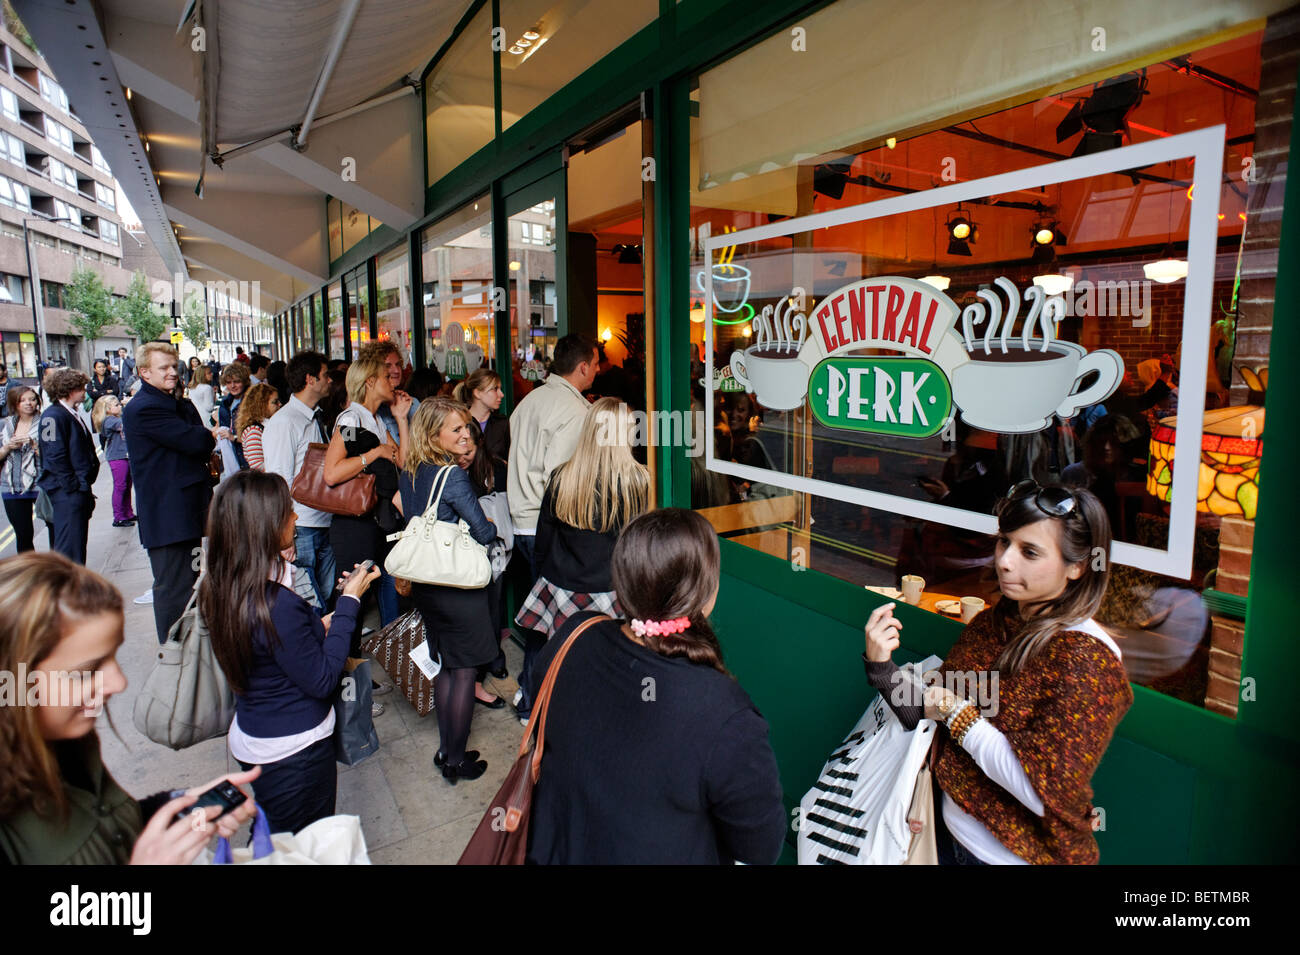 Fans of TV series 'Friends' outside mock up of Central Perk cafe. London. Britain. UK - Stock Image